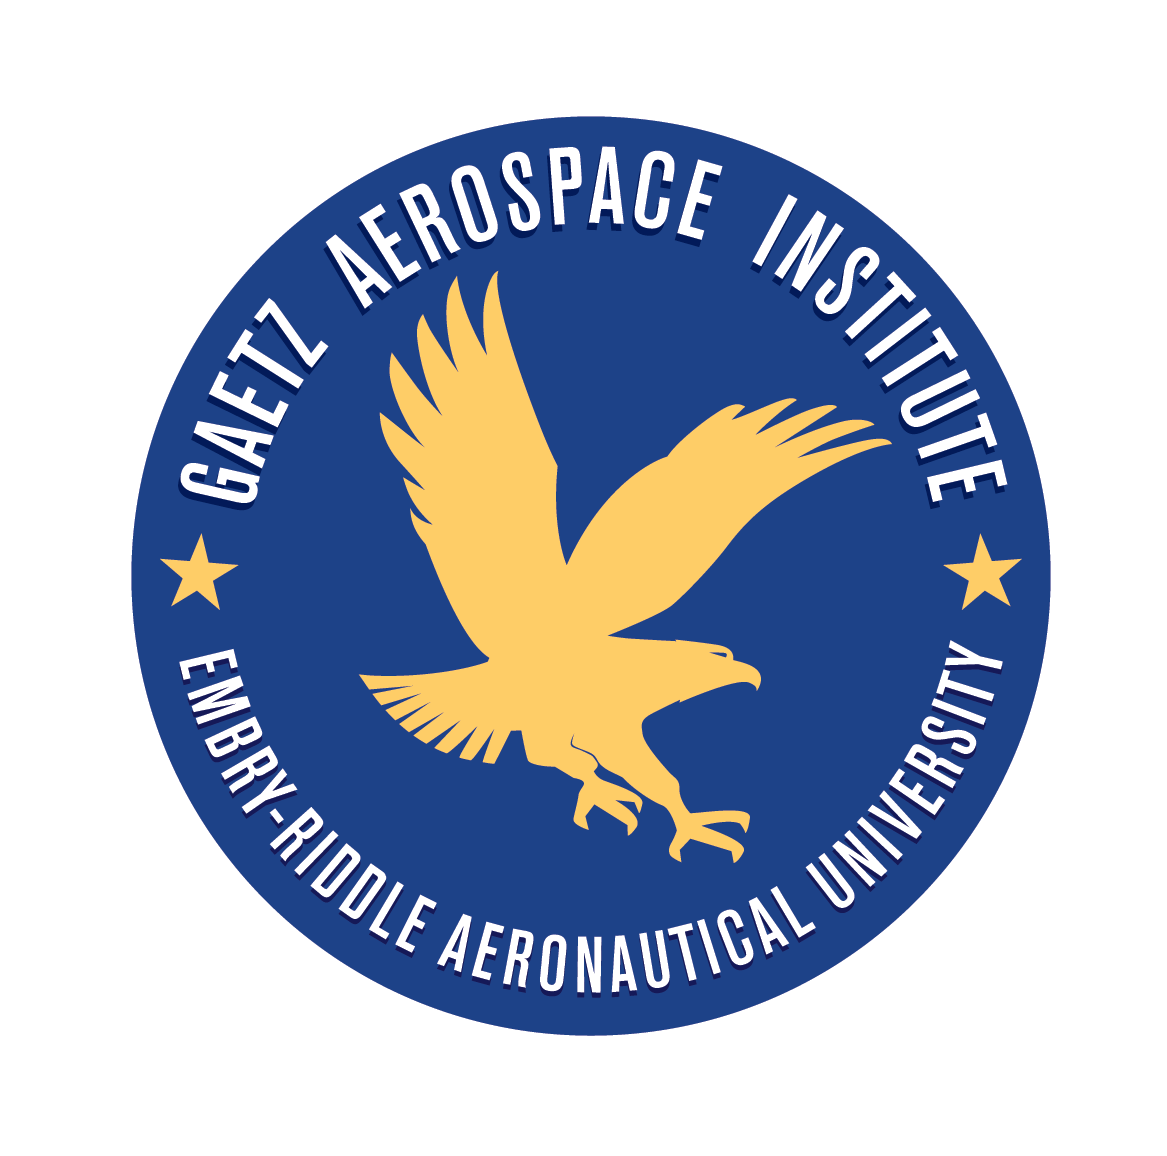 Gaetz Aerospace Institute is a premier cooperative partnership linking Embry-Riddle Aeronautical University with secondary schools.